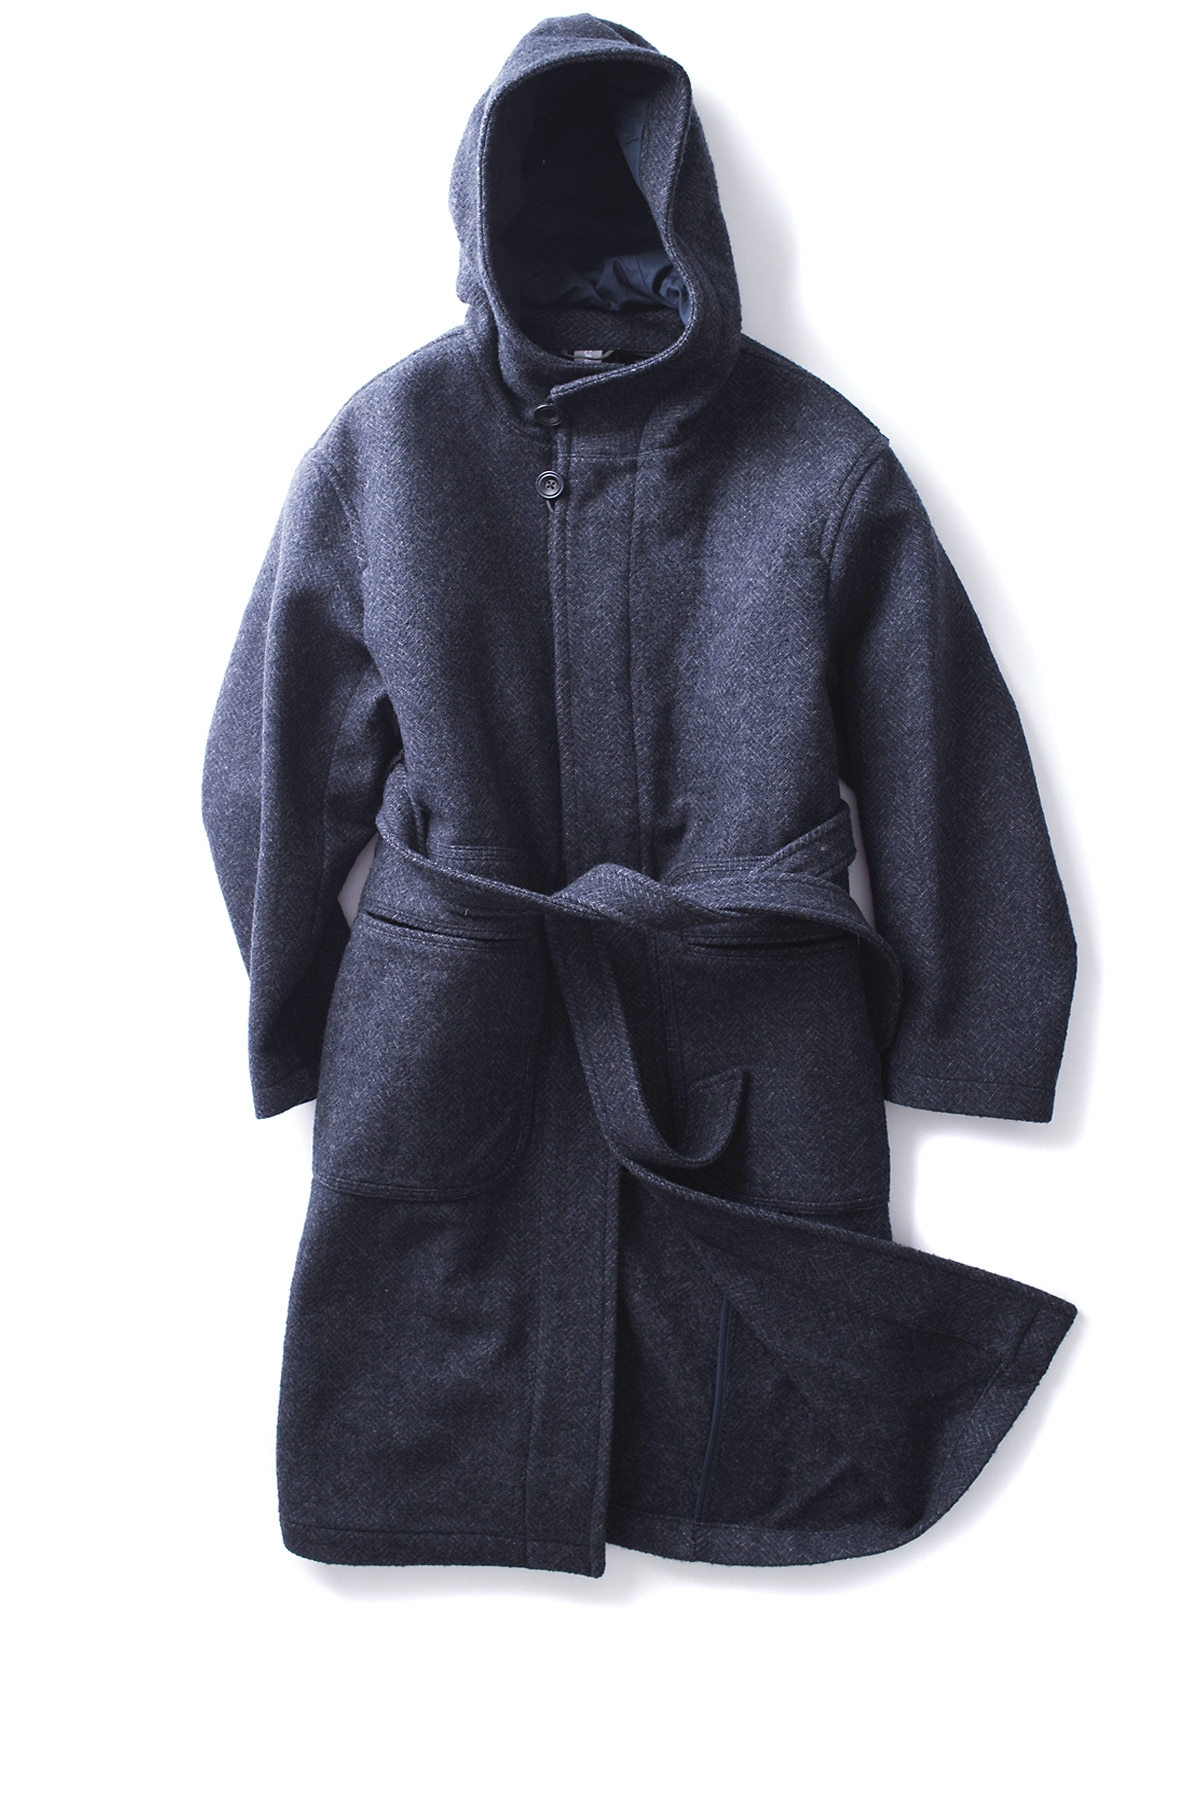 UNAFFECTED : Hooded Robe Coat (Navy HB Wool)